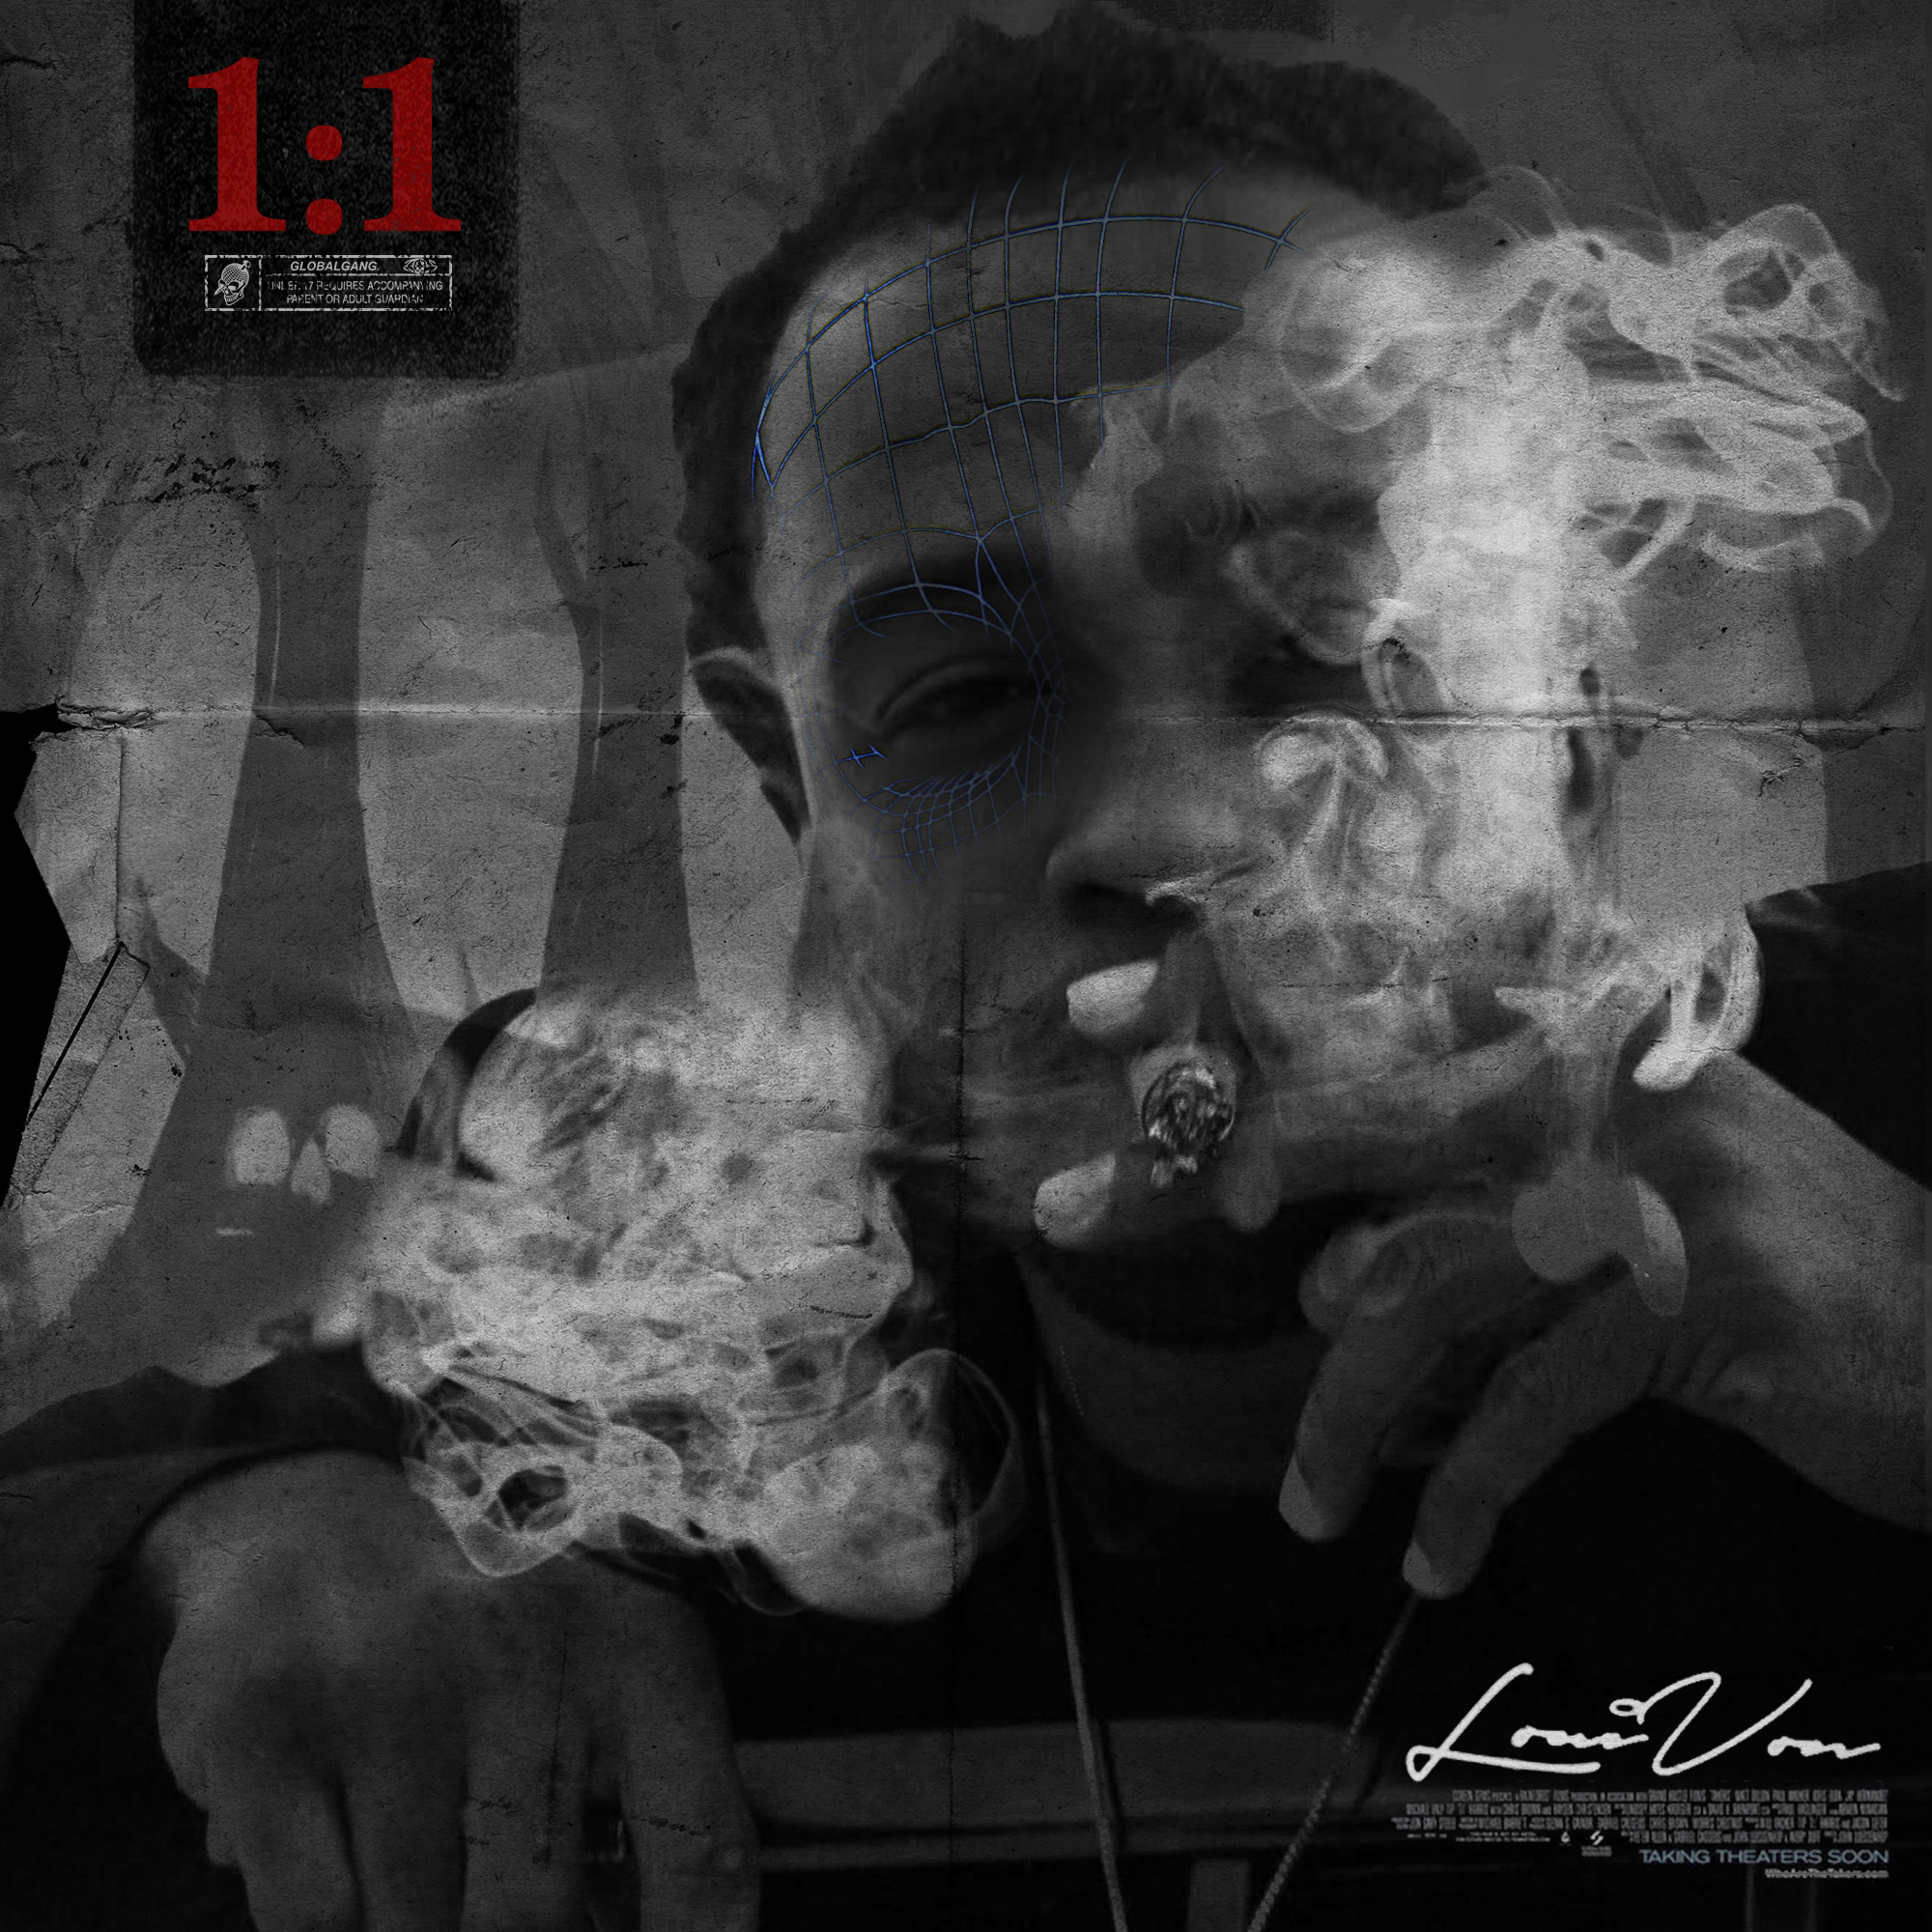 """New Orleans' LouiVon Returns With New """"1:1"""" EP"""